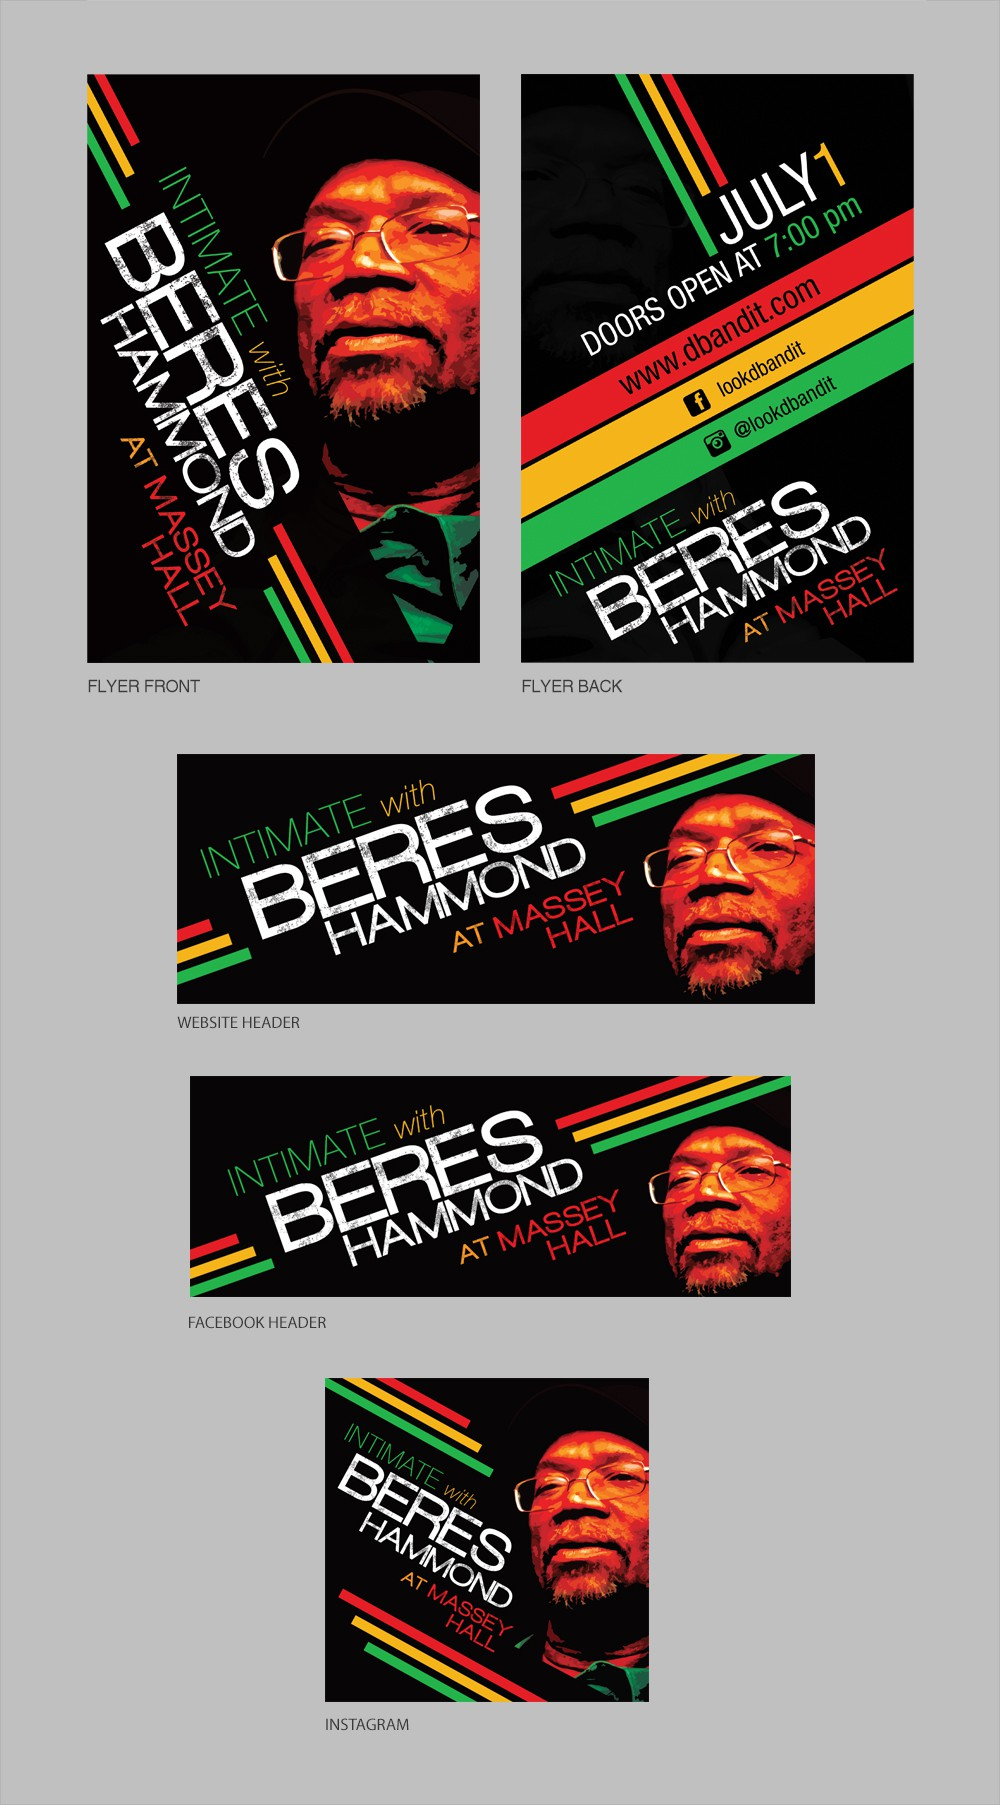 Design a contemporary reggae concert campaign for Beres Hammond